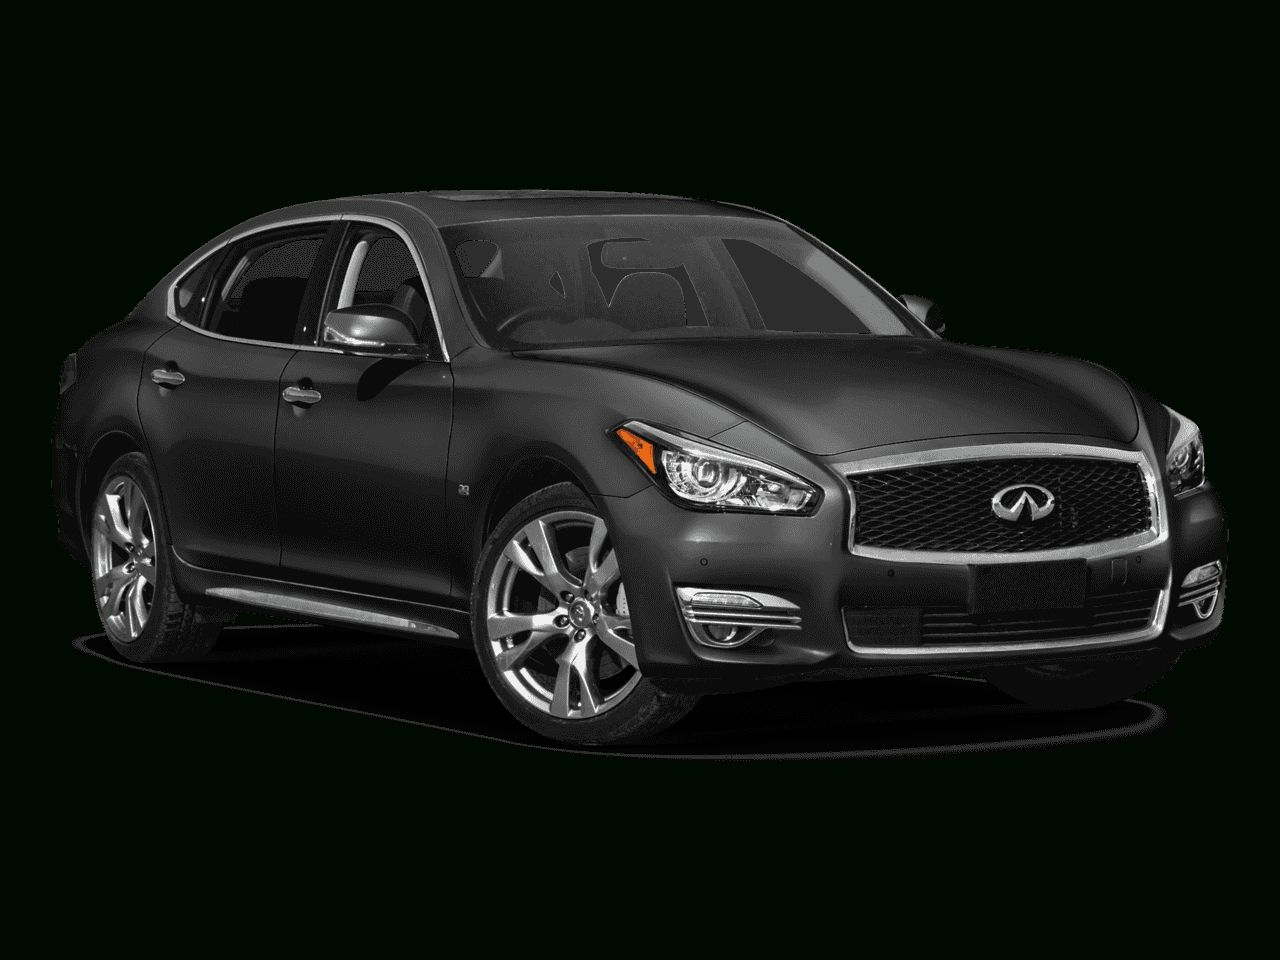 2019 Infiniti Q70l Price Car Review 2018 2019 First Drive